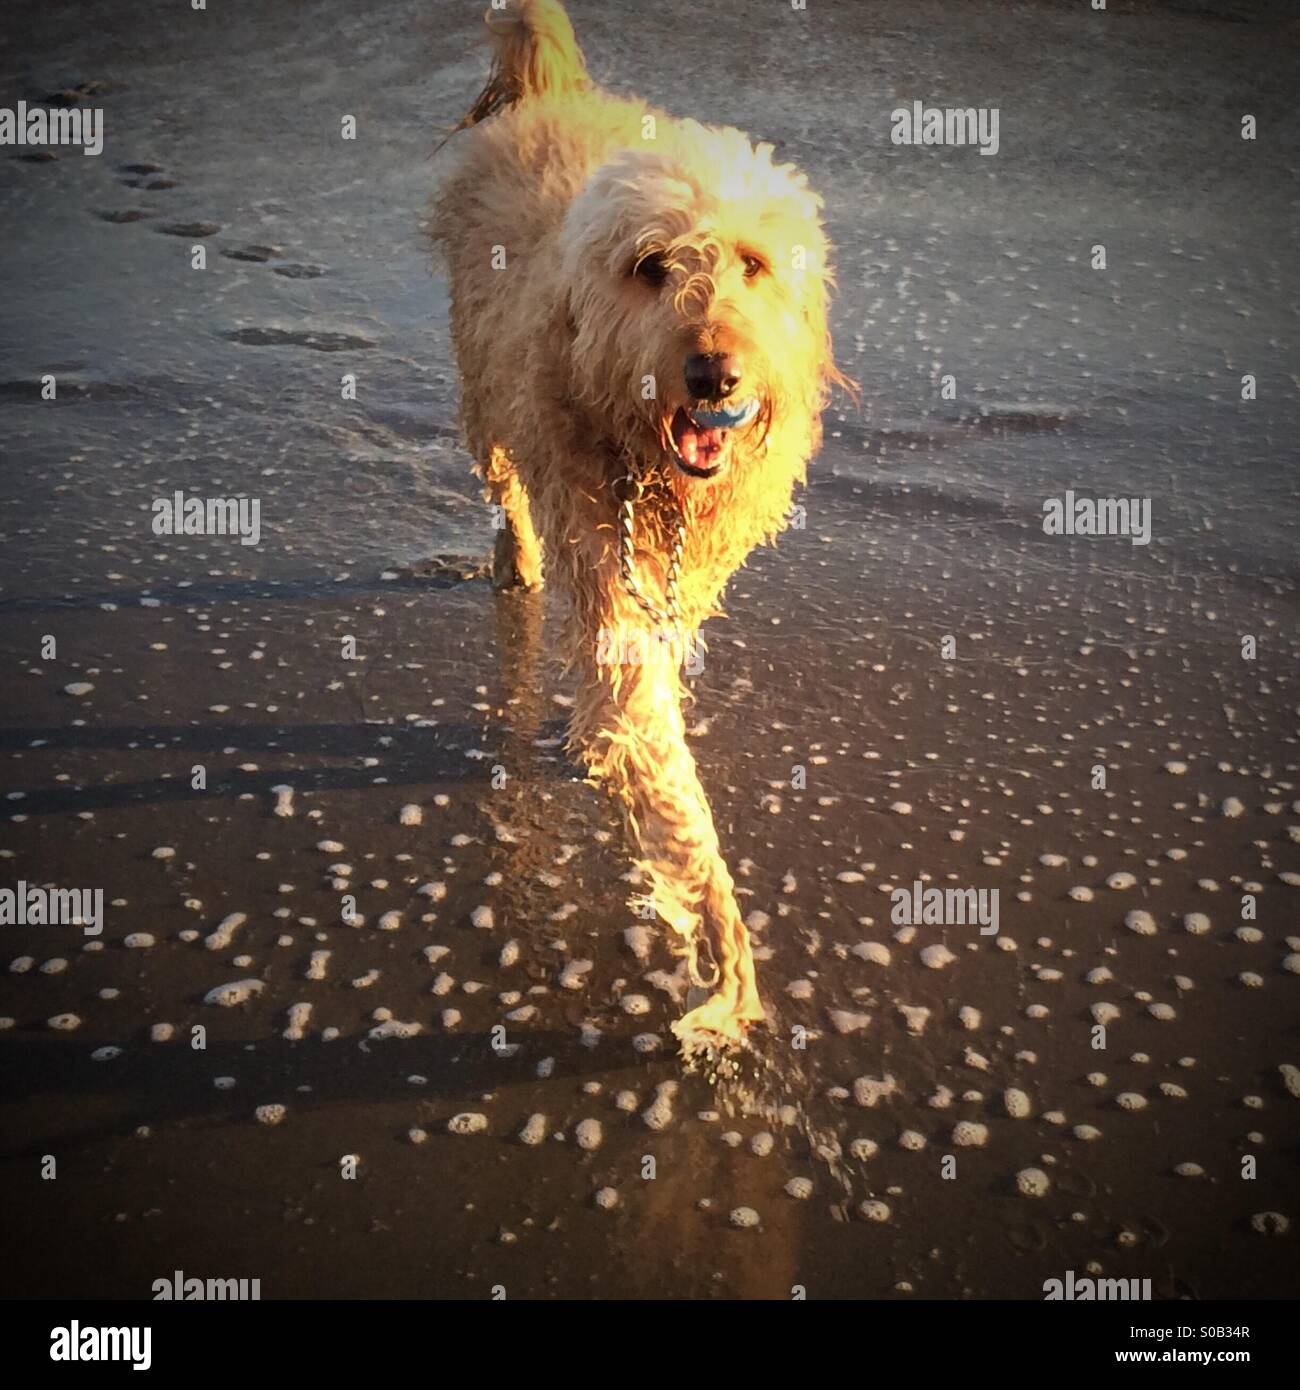 A GoldenDoodle (half Golden Retriever half Poodle) mixed breed dog plays fetch with a ball on the beach at sunset - Stock Image